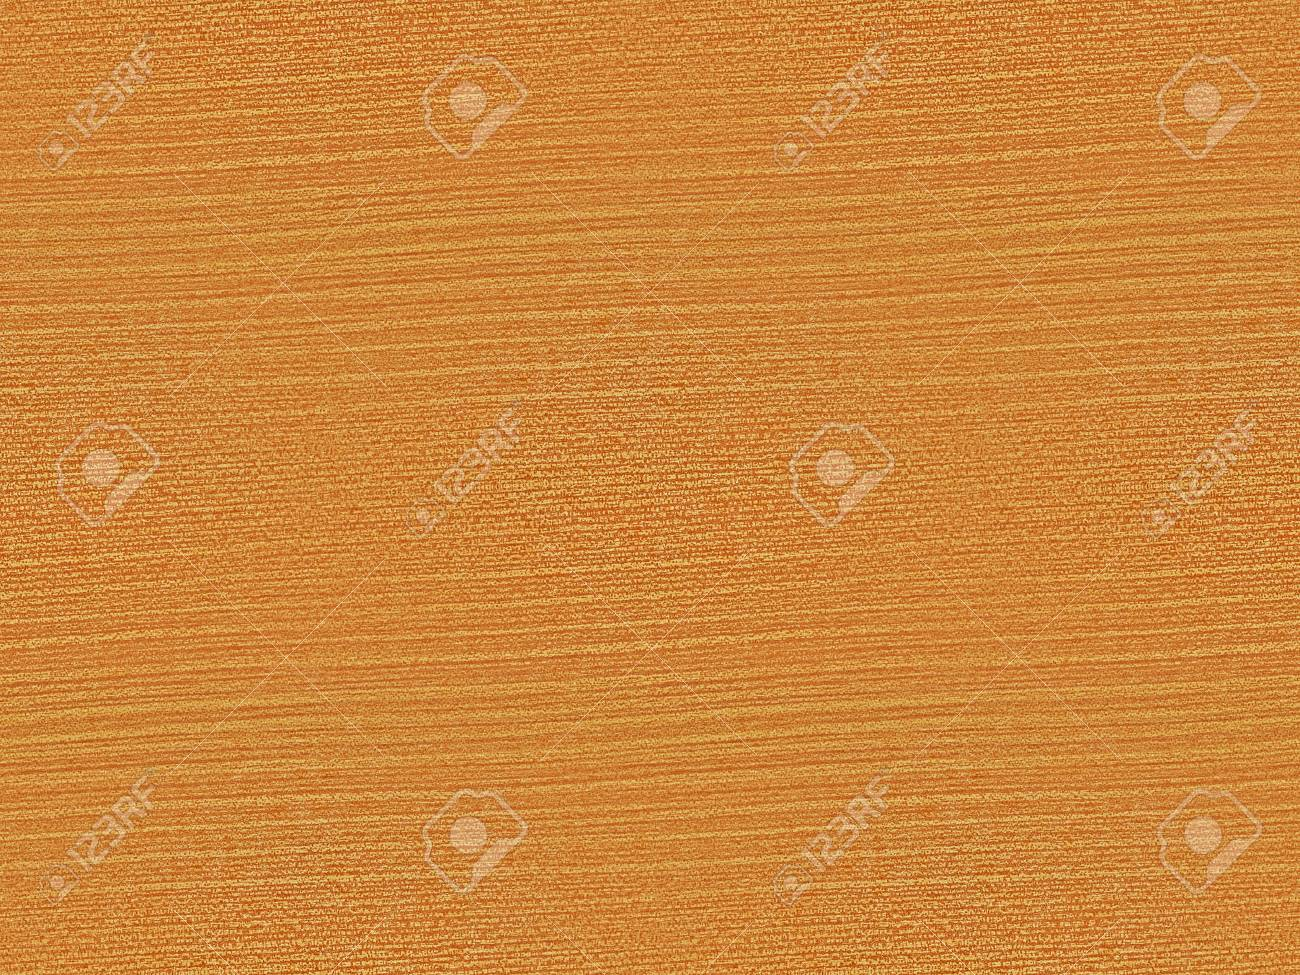 tileable wood texture. Seamless Tileable Wood Texture Background Stock Photo - 9987552